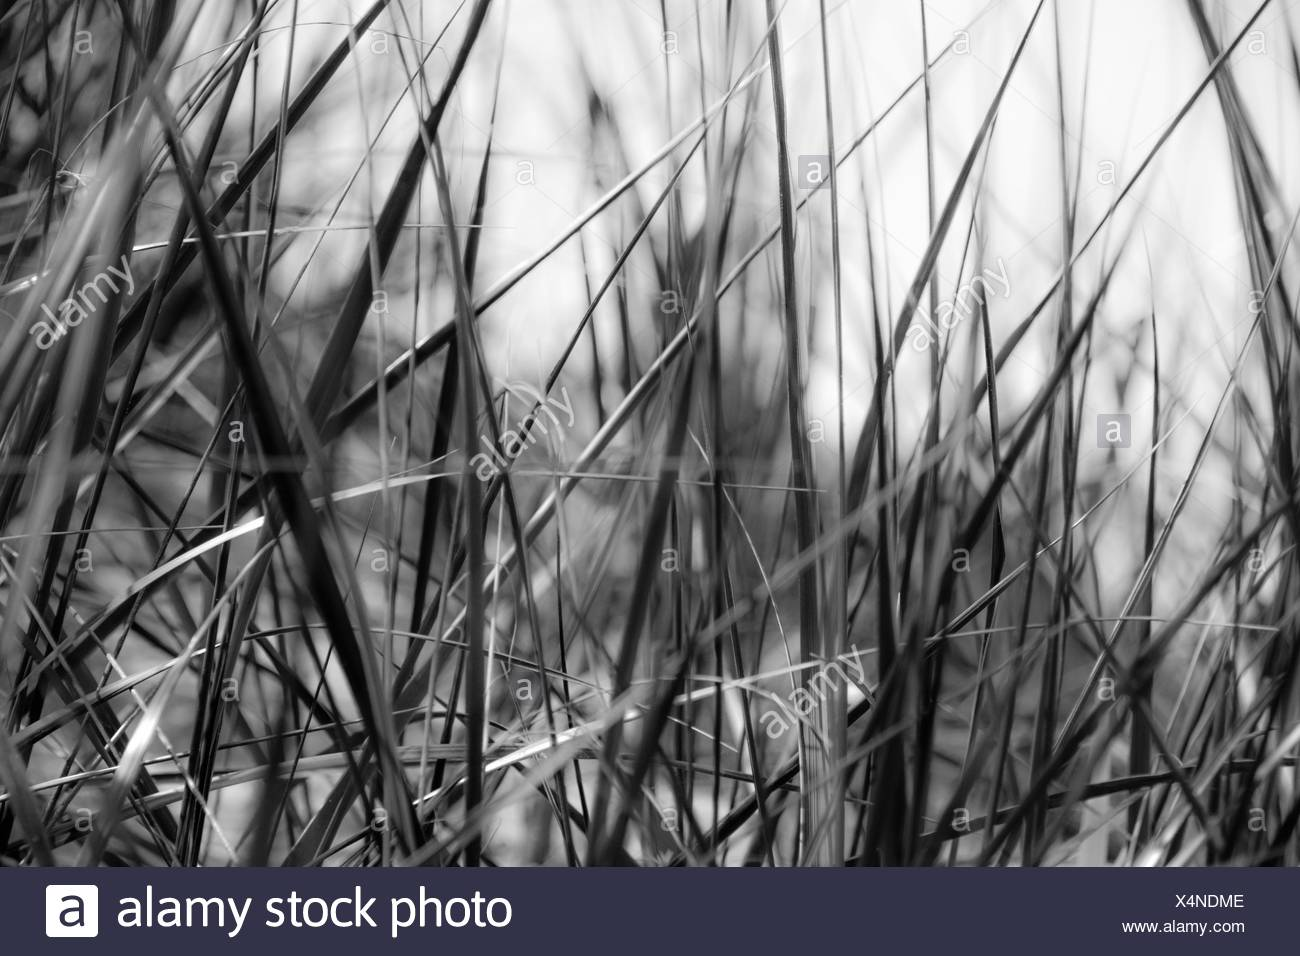 Detail Shot Of Grass - Stock Image